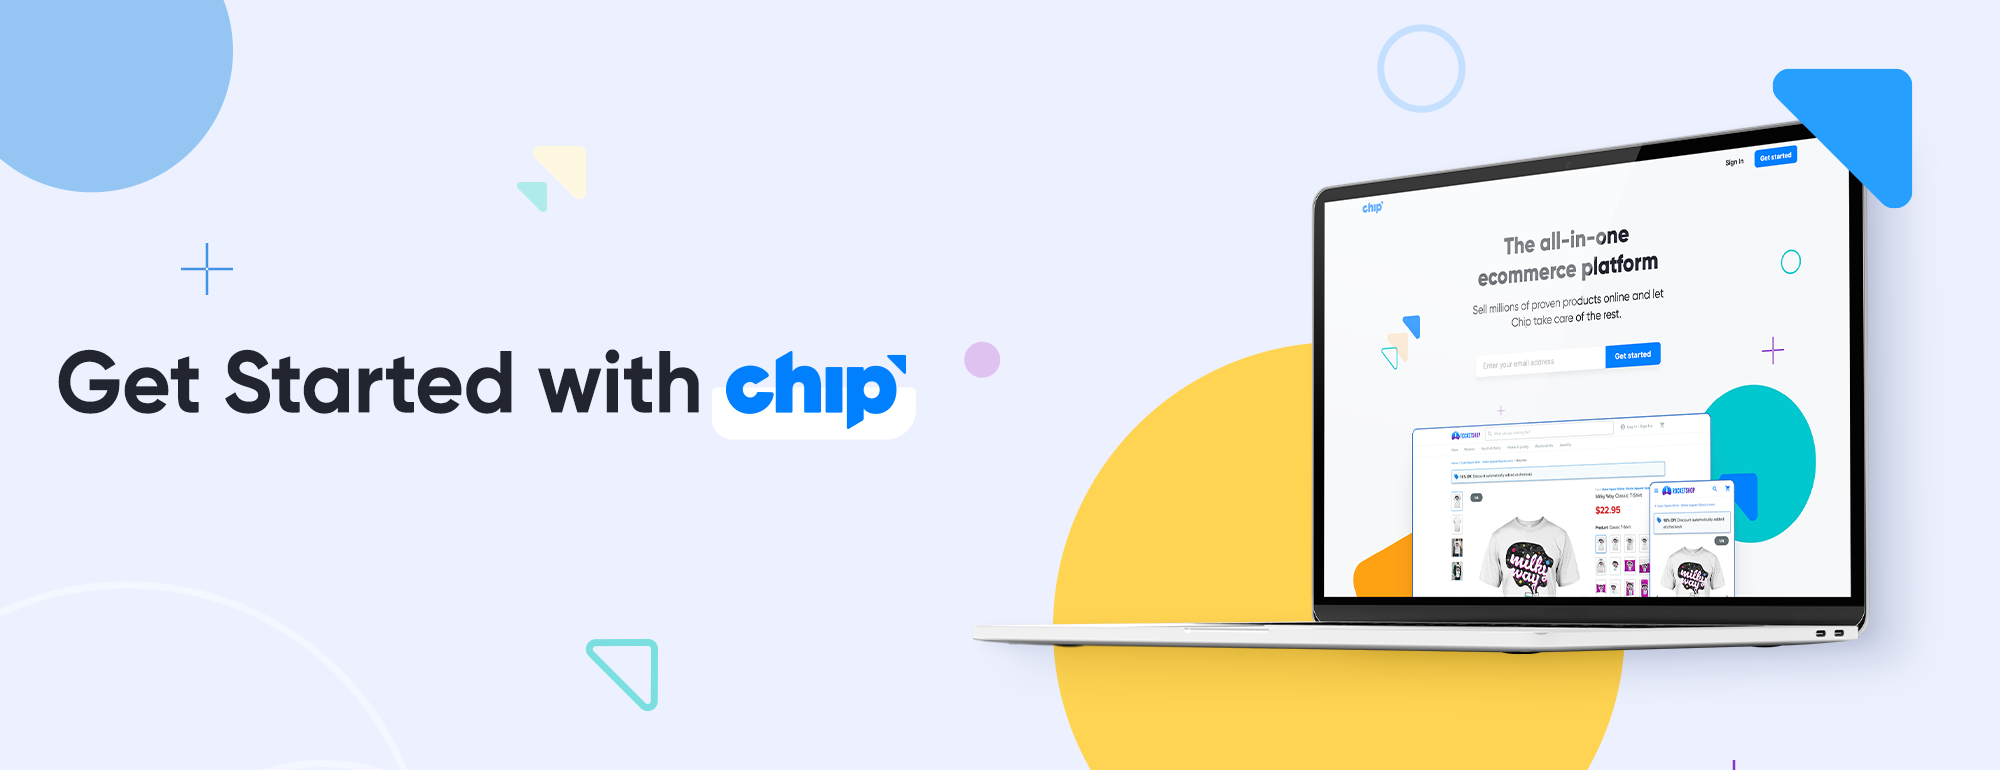 Get Started with Chip banner